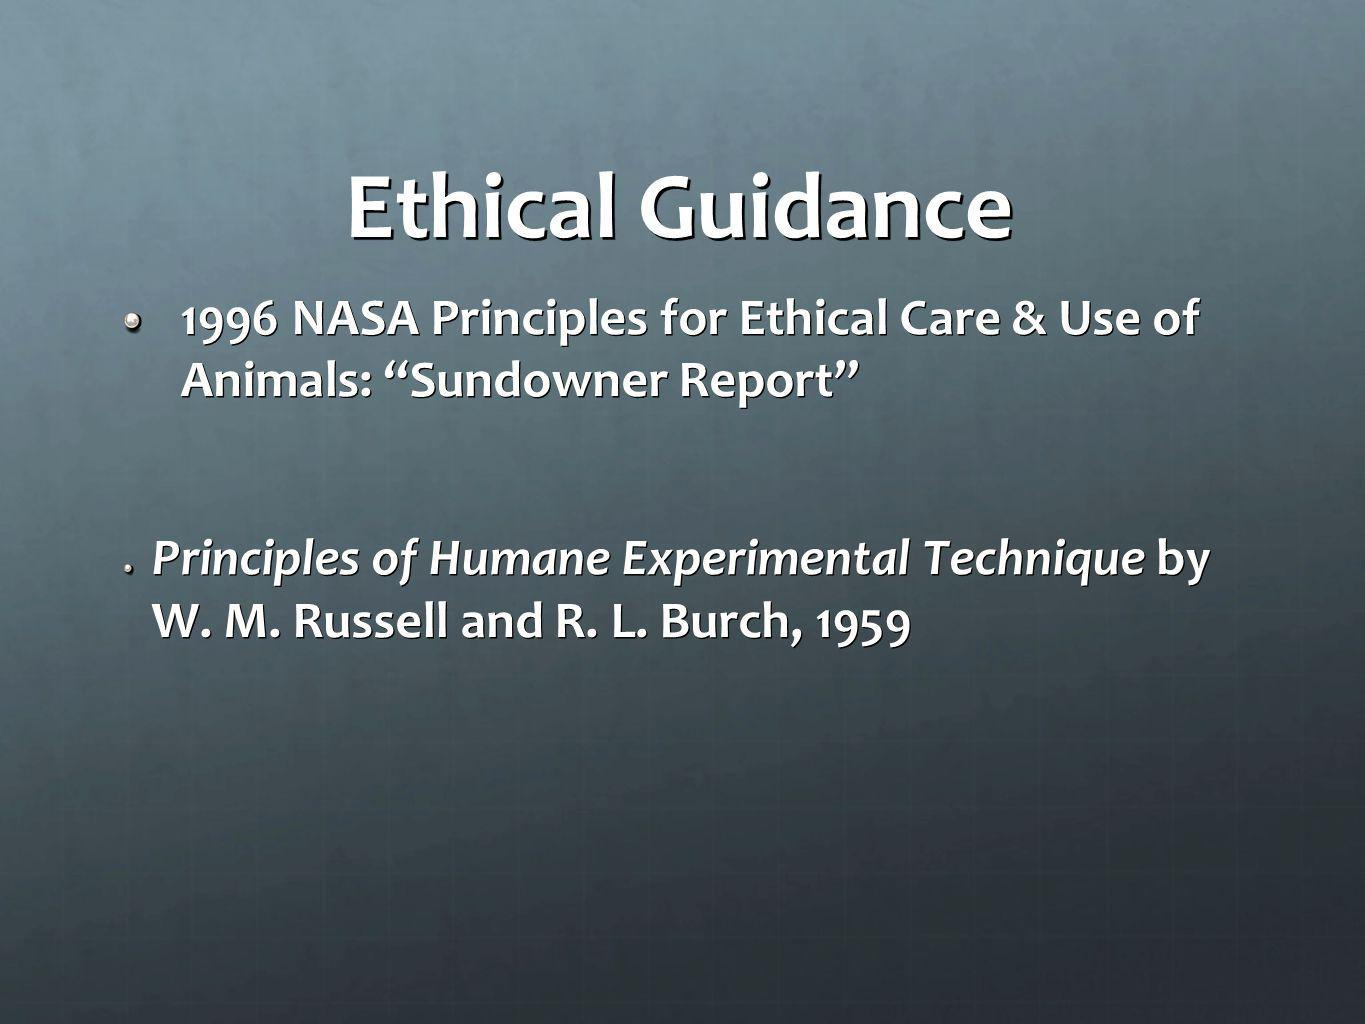 Ethical Guidance 1996 NASA Principles for Ethical Care & Use of Animals: Sundowner Report